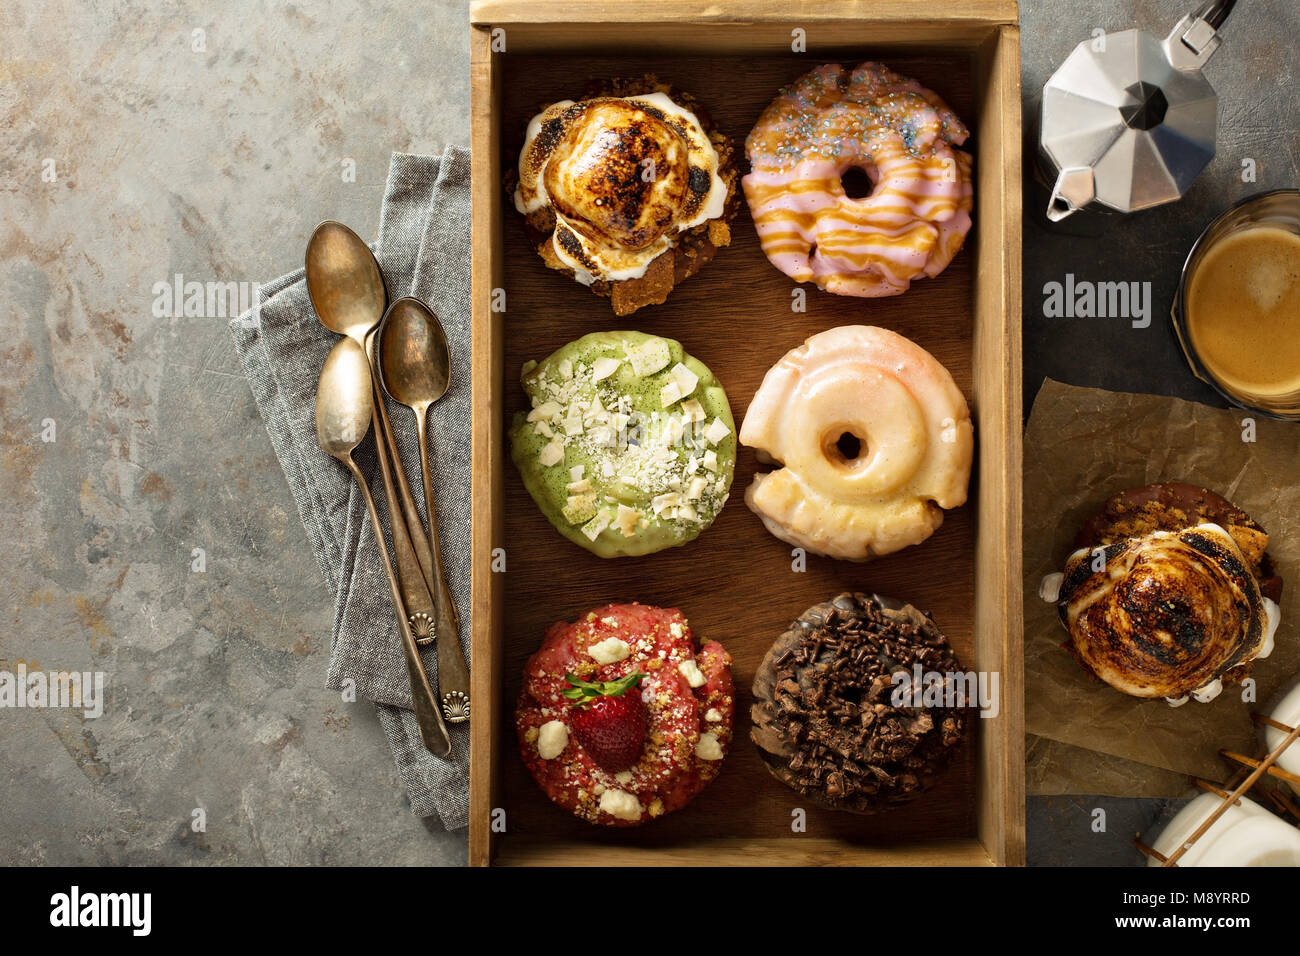 Variety of donuts in a wooden box - Stock Image